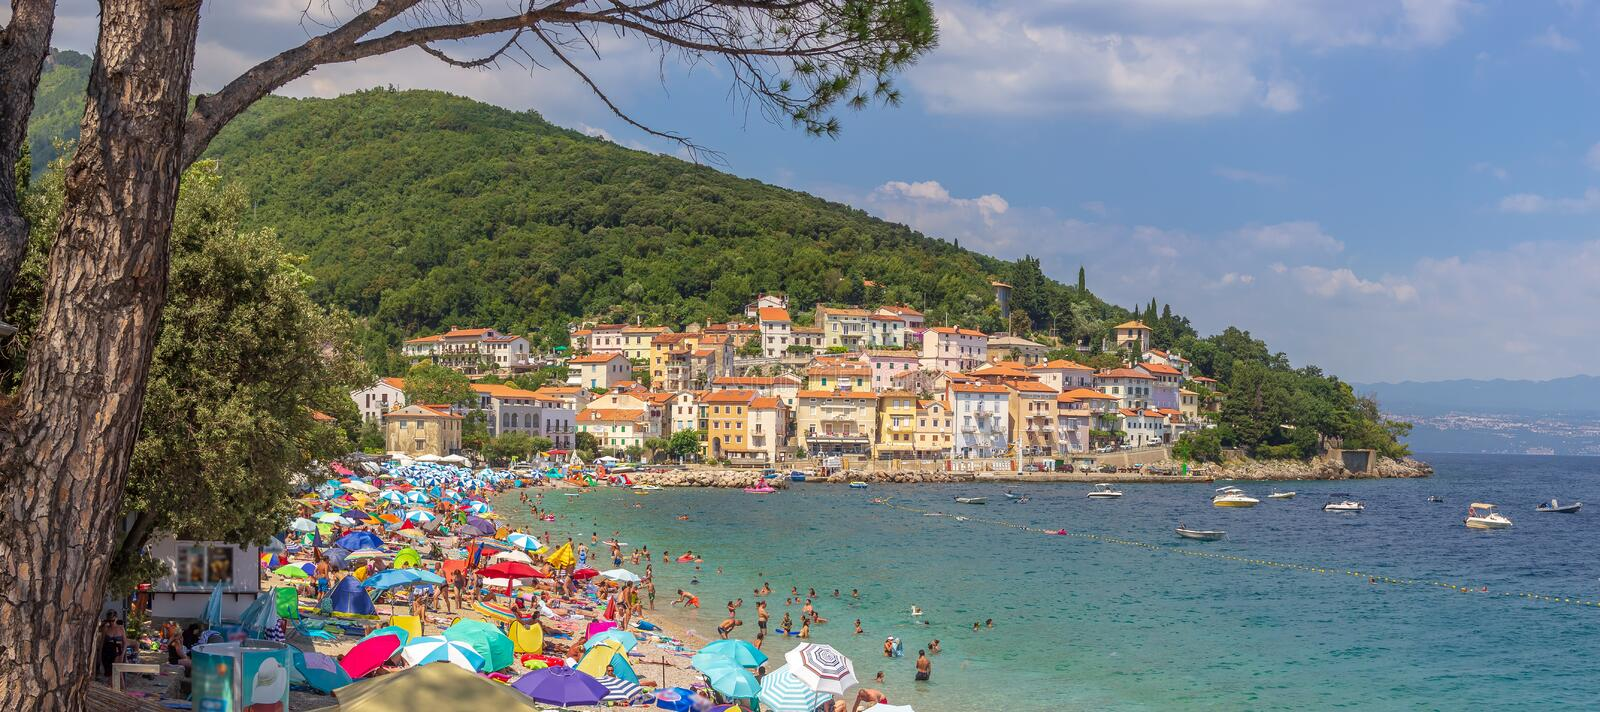 Mošćenička Draga, Croatia - Beautiful Water Colors and Old Town and Coastline at the Adriatic Sea Beach Full of People royalty free stock photography